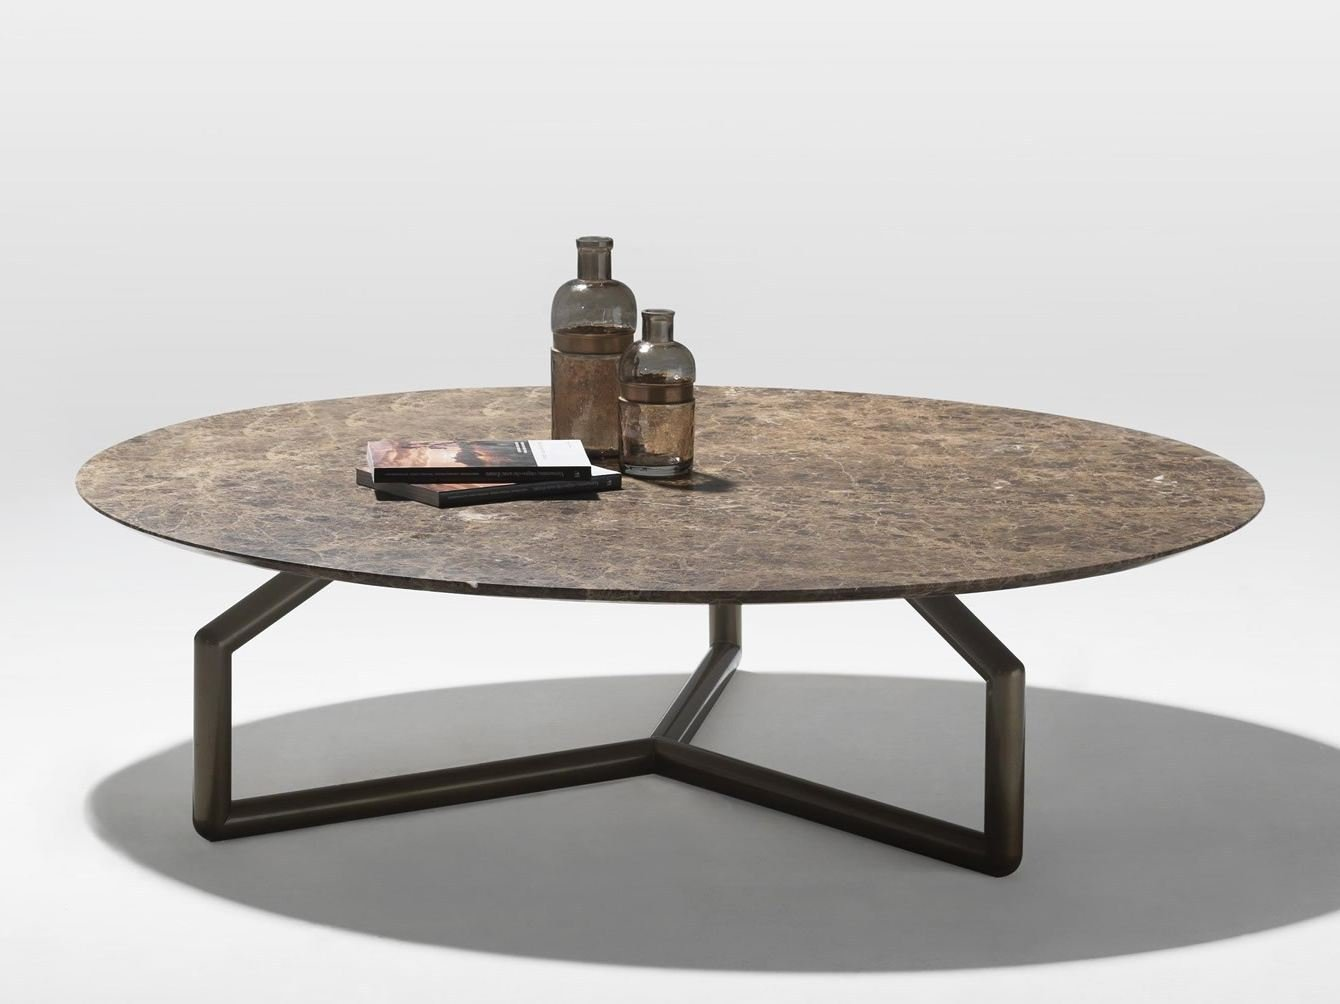 Low round marble coffee table ginger by esedra design studio memo Round marble coffee tables